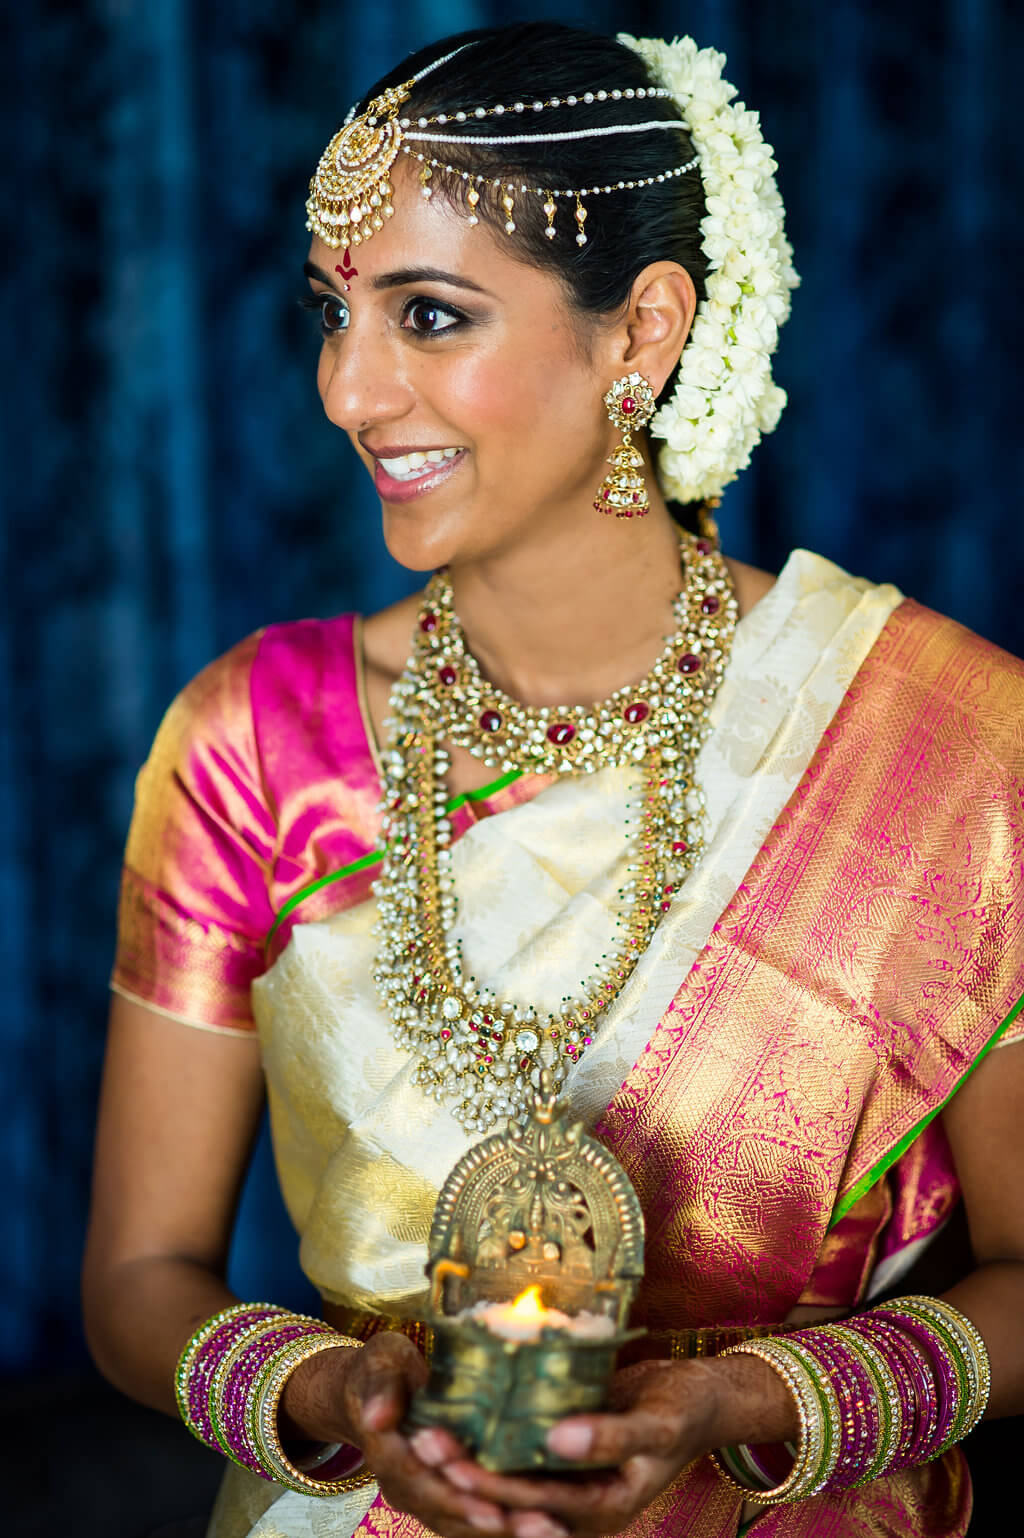 Real Wedding of Kavya and Pranay _ Photography by Davina and Daniel Ecletic fusion Indian American Wedding Planning India Mehndi Reception (28)